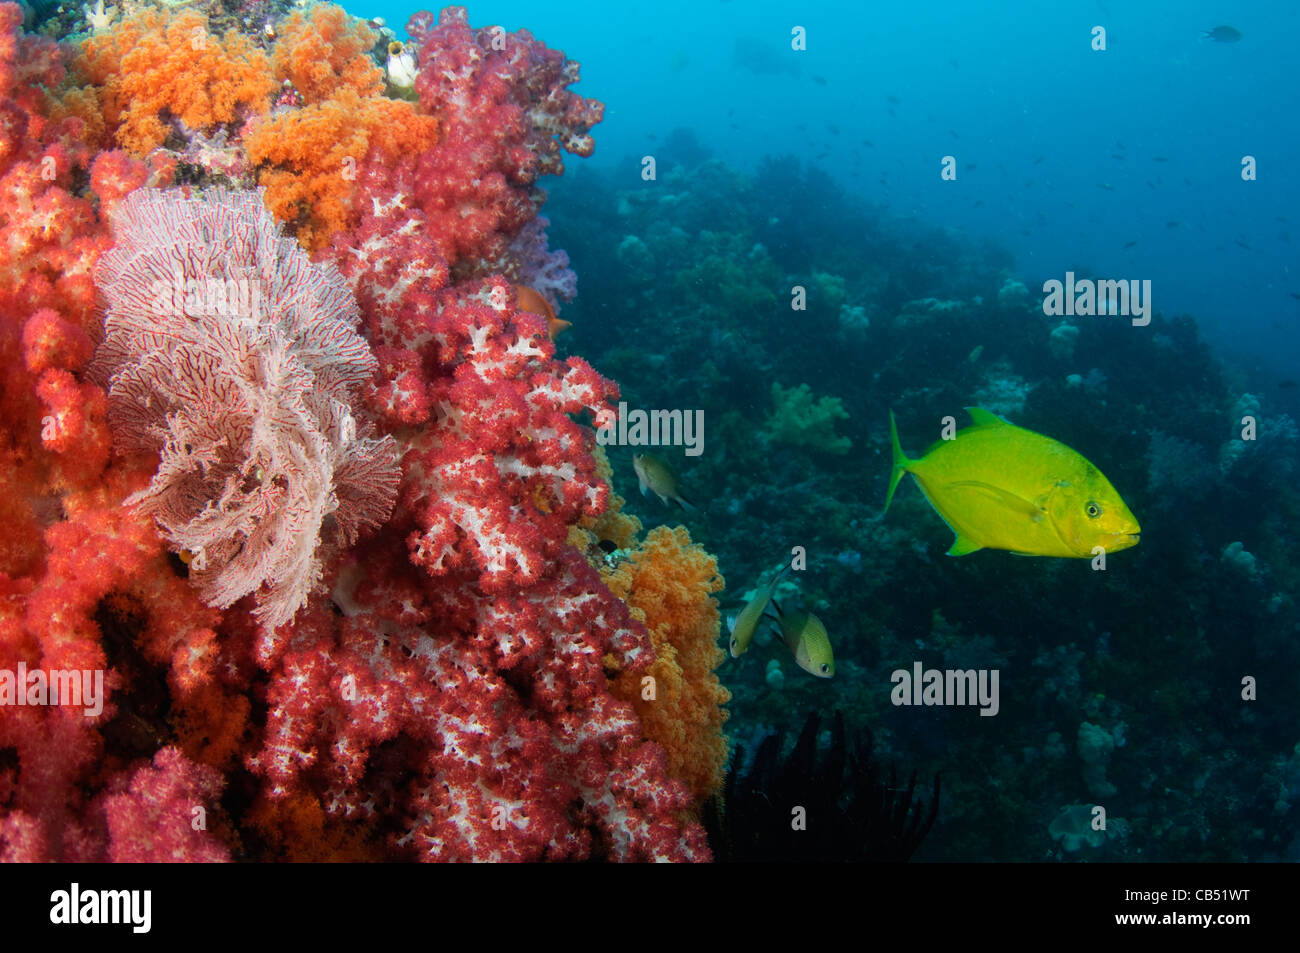 Spotted Trevally Stock Photos & Spotted Trevally Stock Images - Alamy